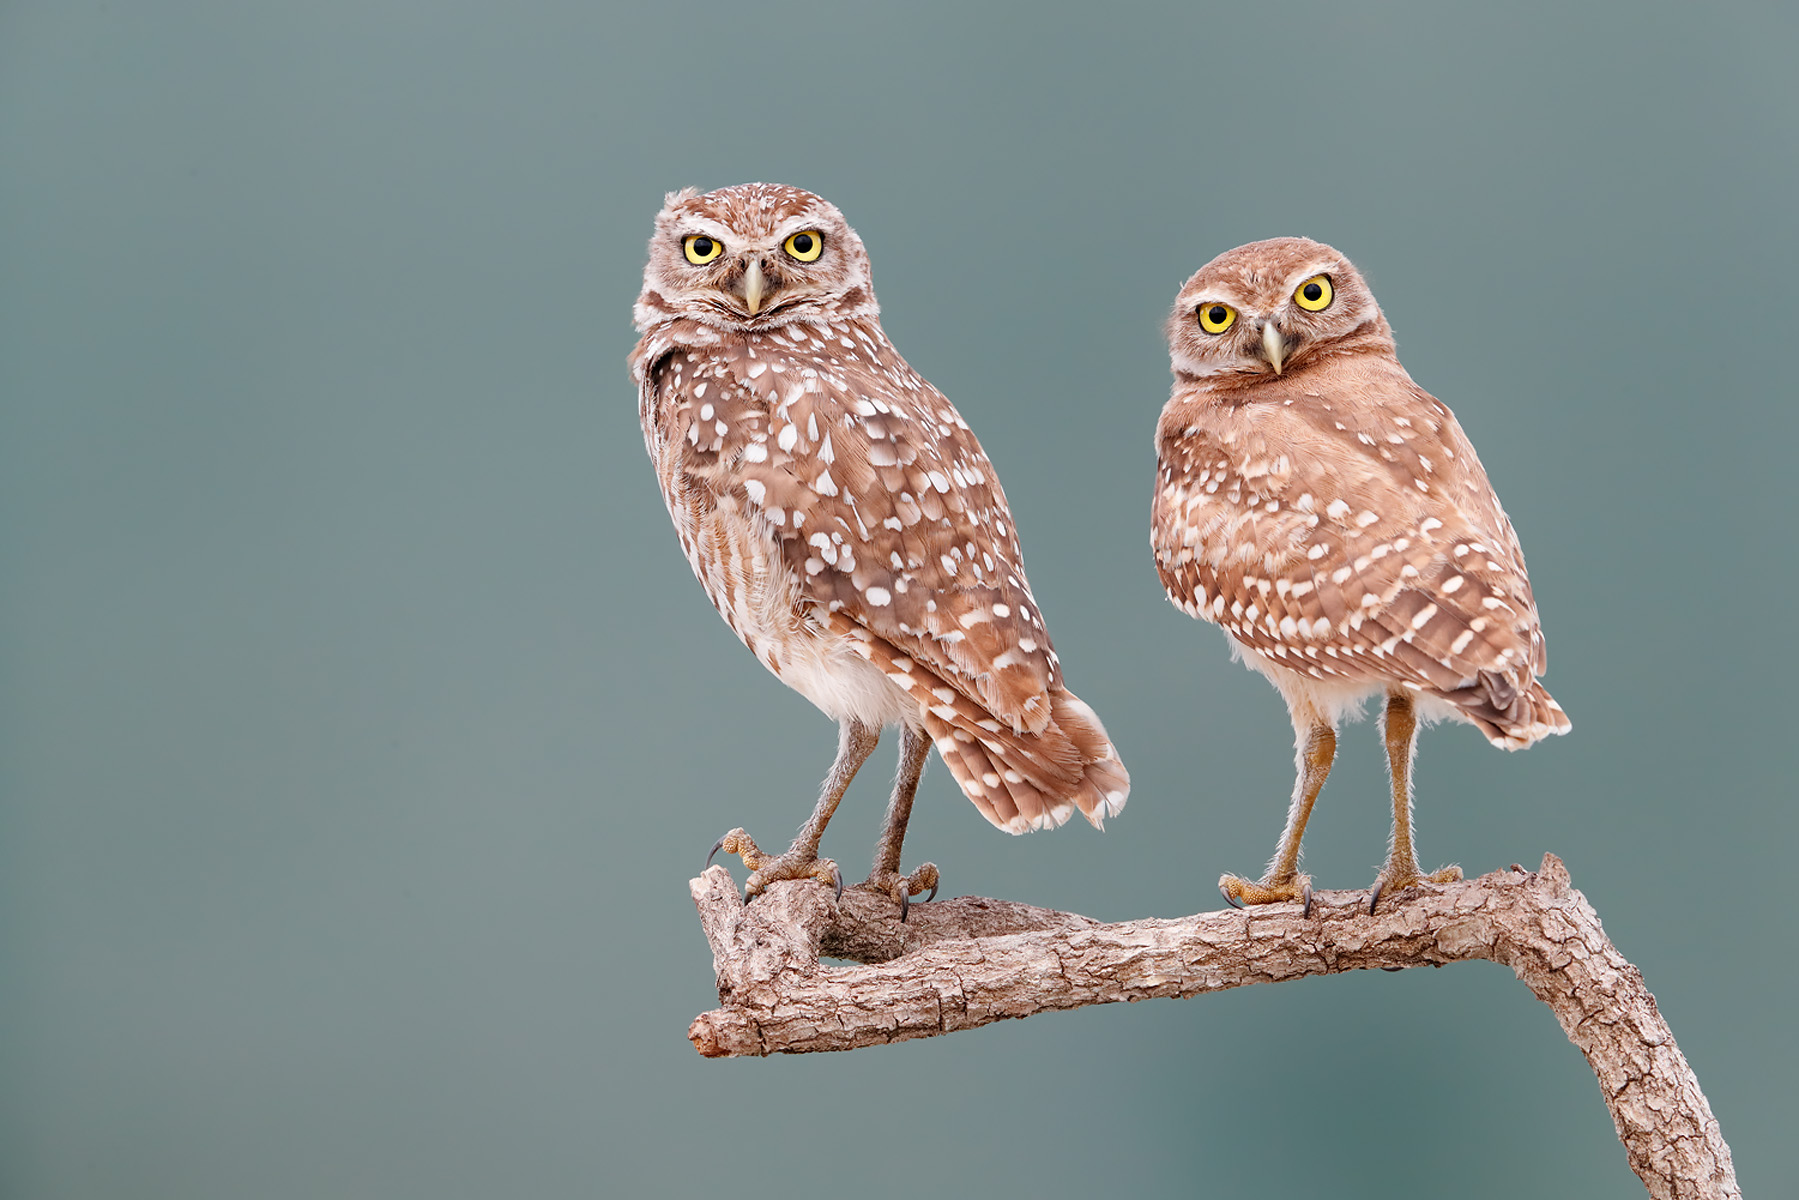 Burrowing owls on perch with turquois bkgd II_A3I0268-Boca Raton Airport, FL, USA.jpg